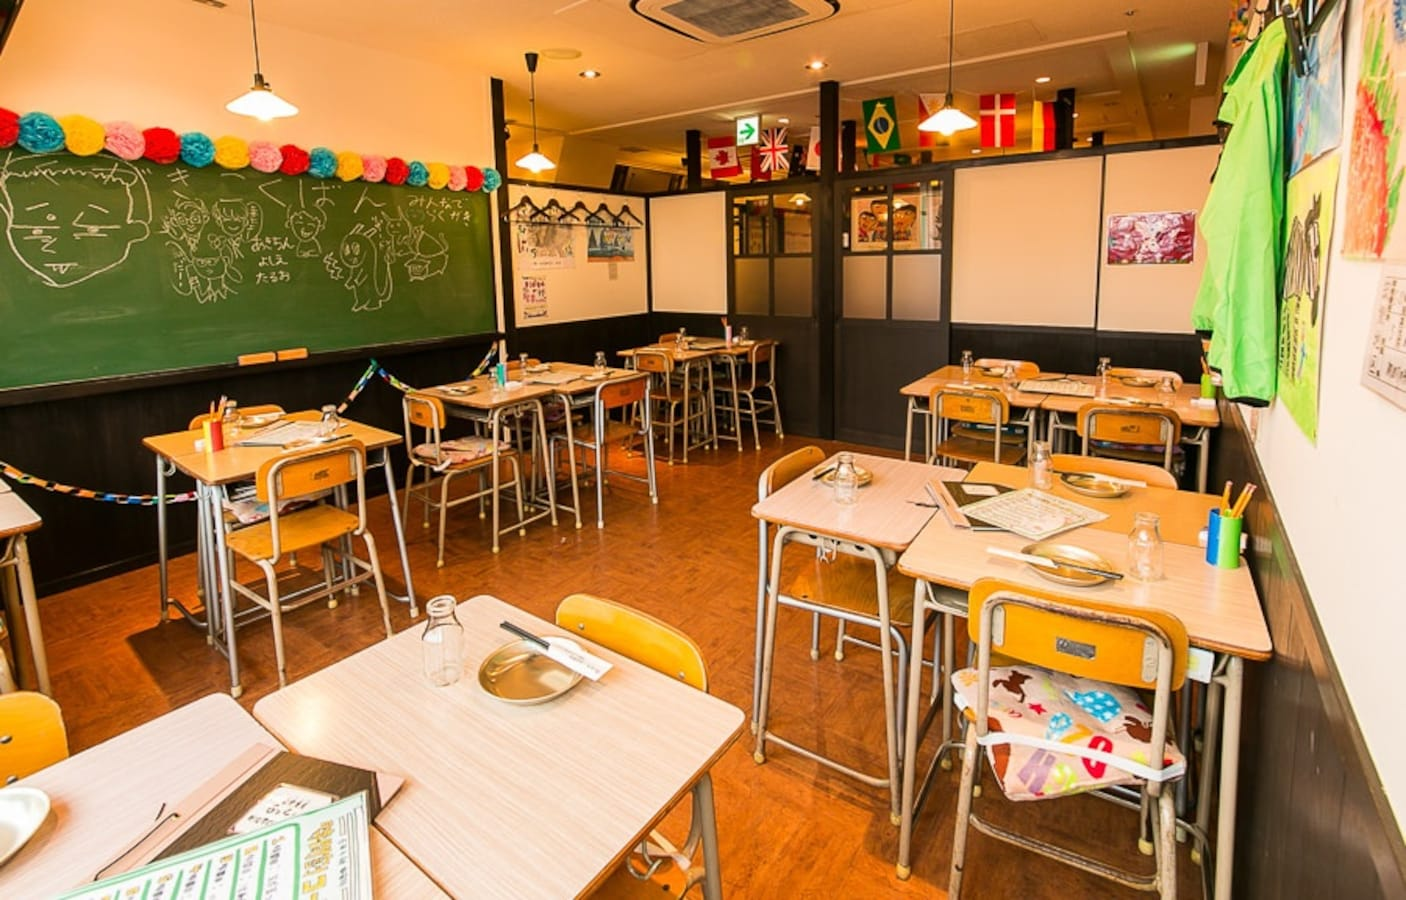 Classroom Restaurant Design ~ Step into a japanese classroom at this izakaya all about